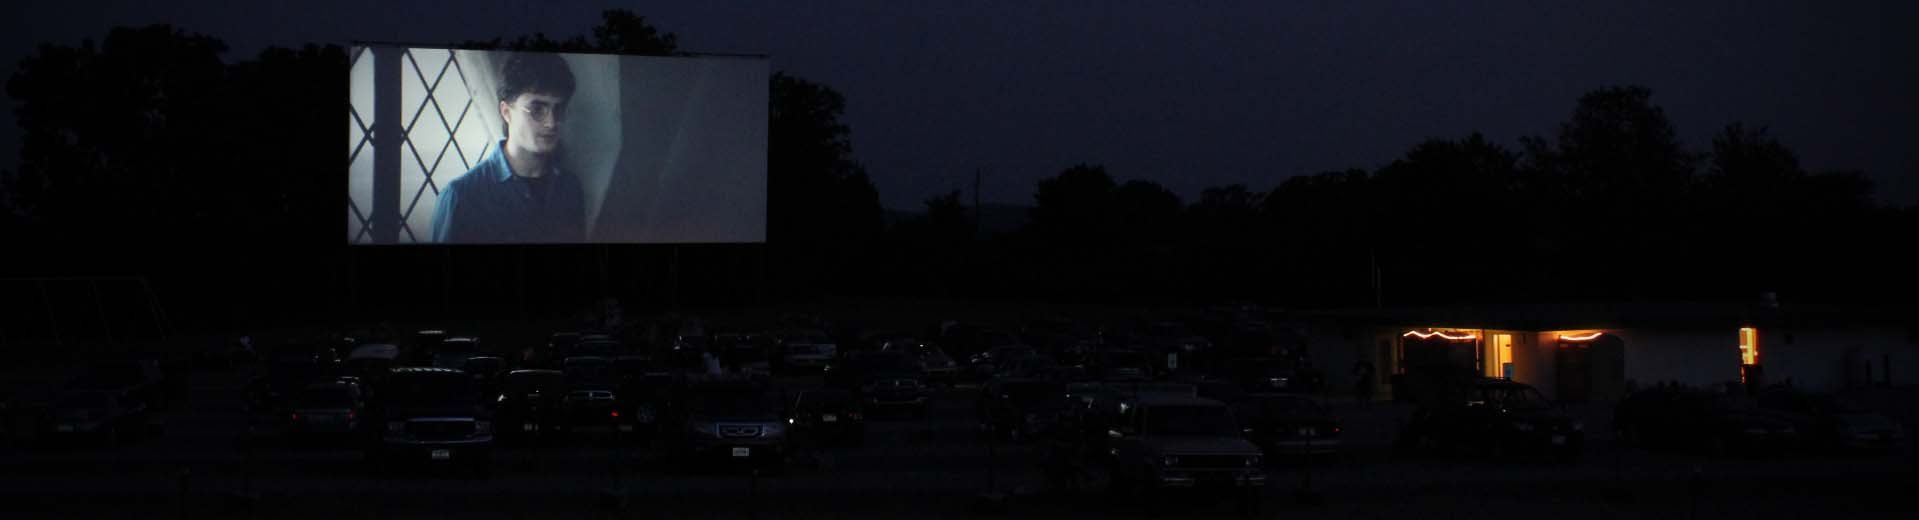 Harry Potter is screened at the Cumberland Drive-In Theatre in Newville